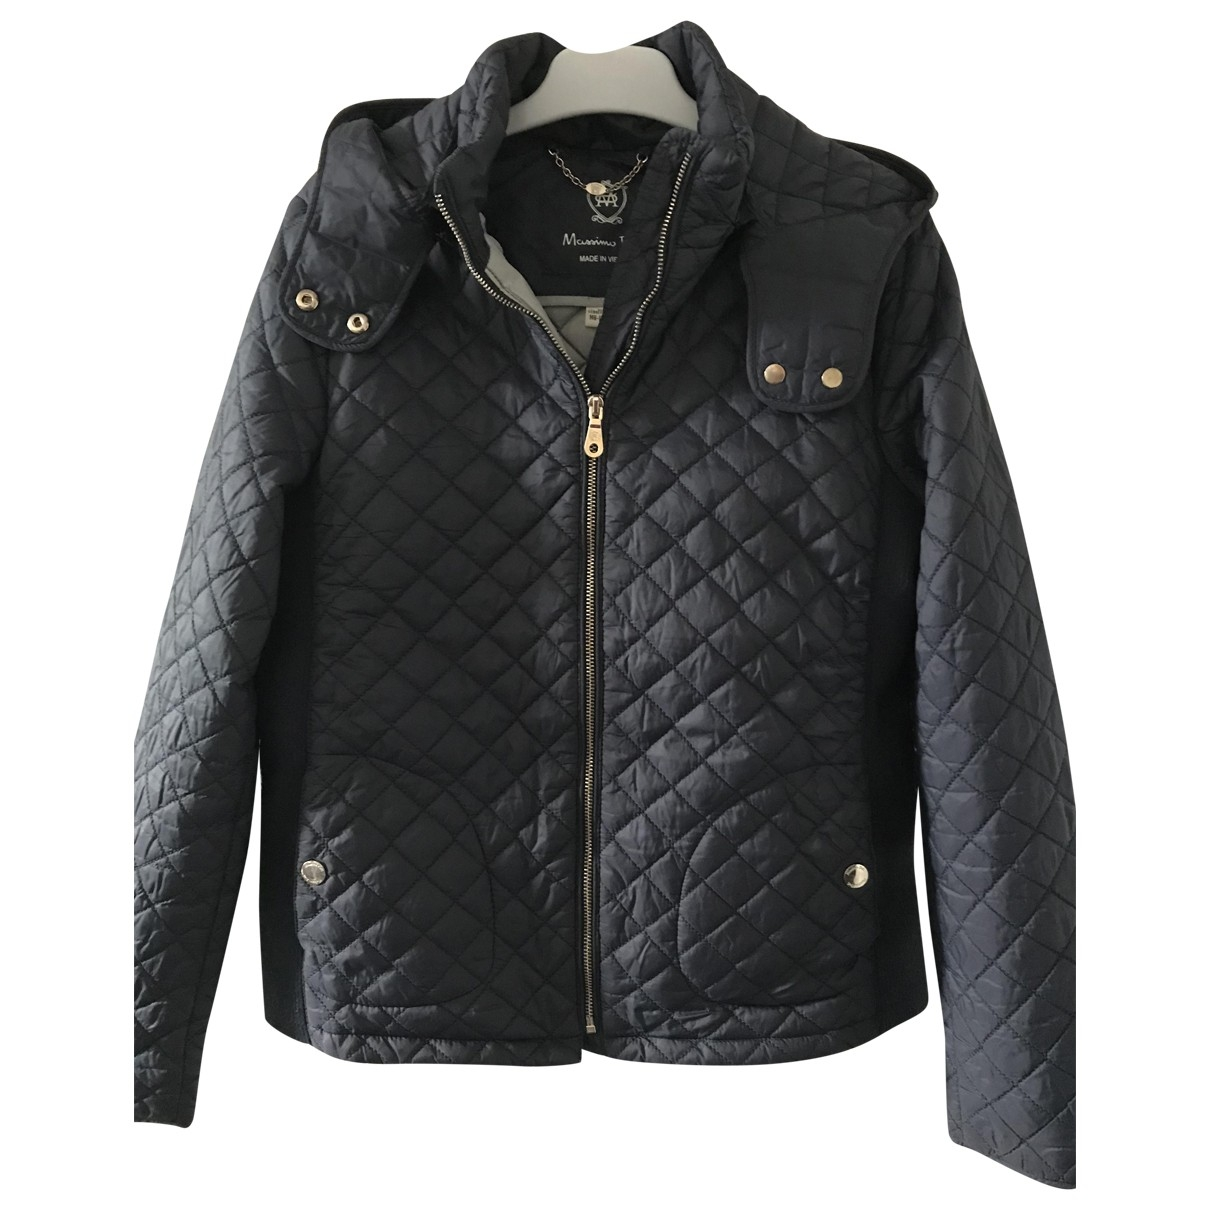 Massimo Dutti \N Navy jacket & coat for Kids 12 years - XS FR